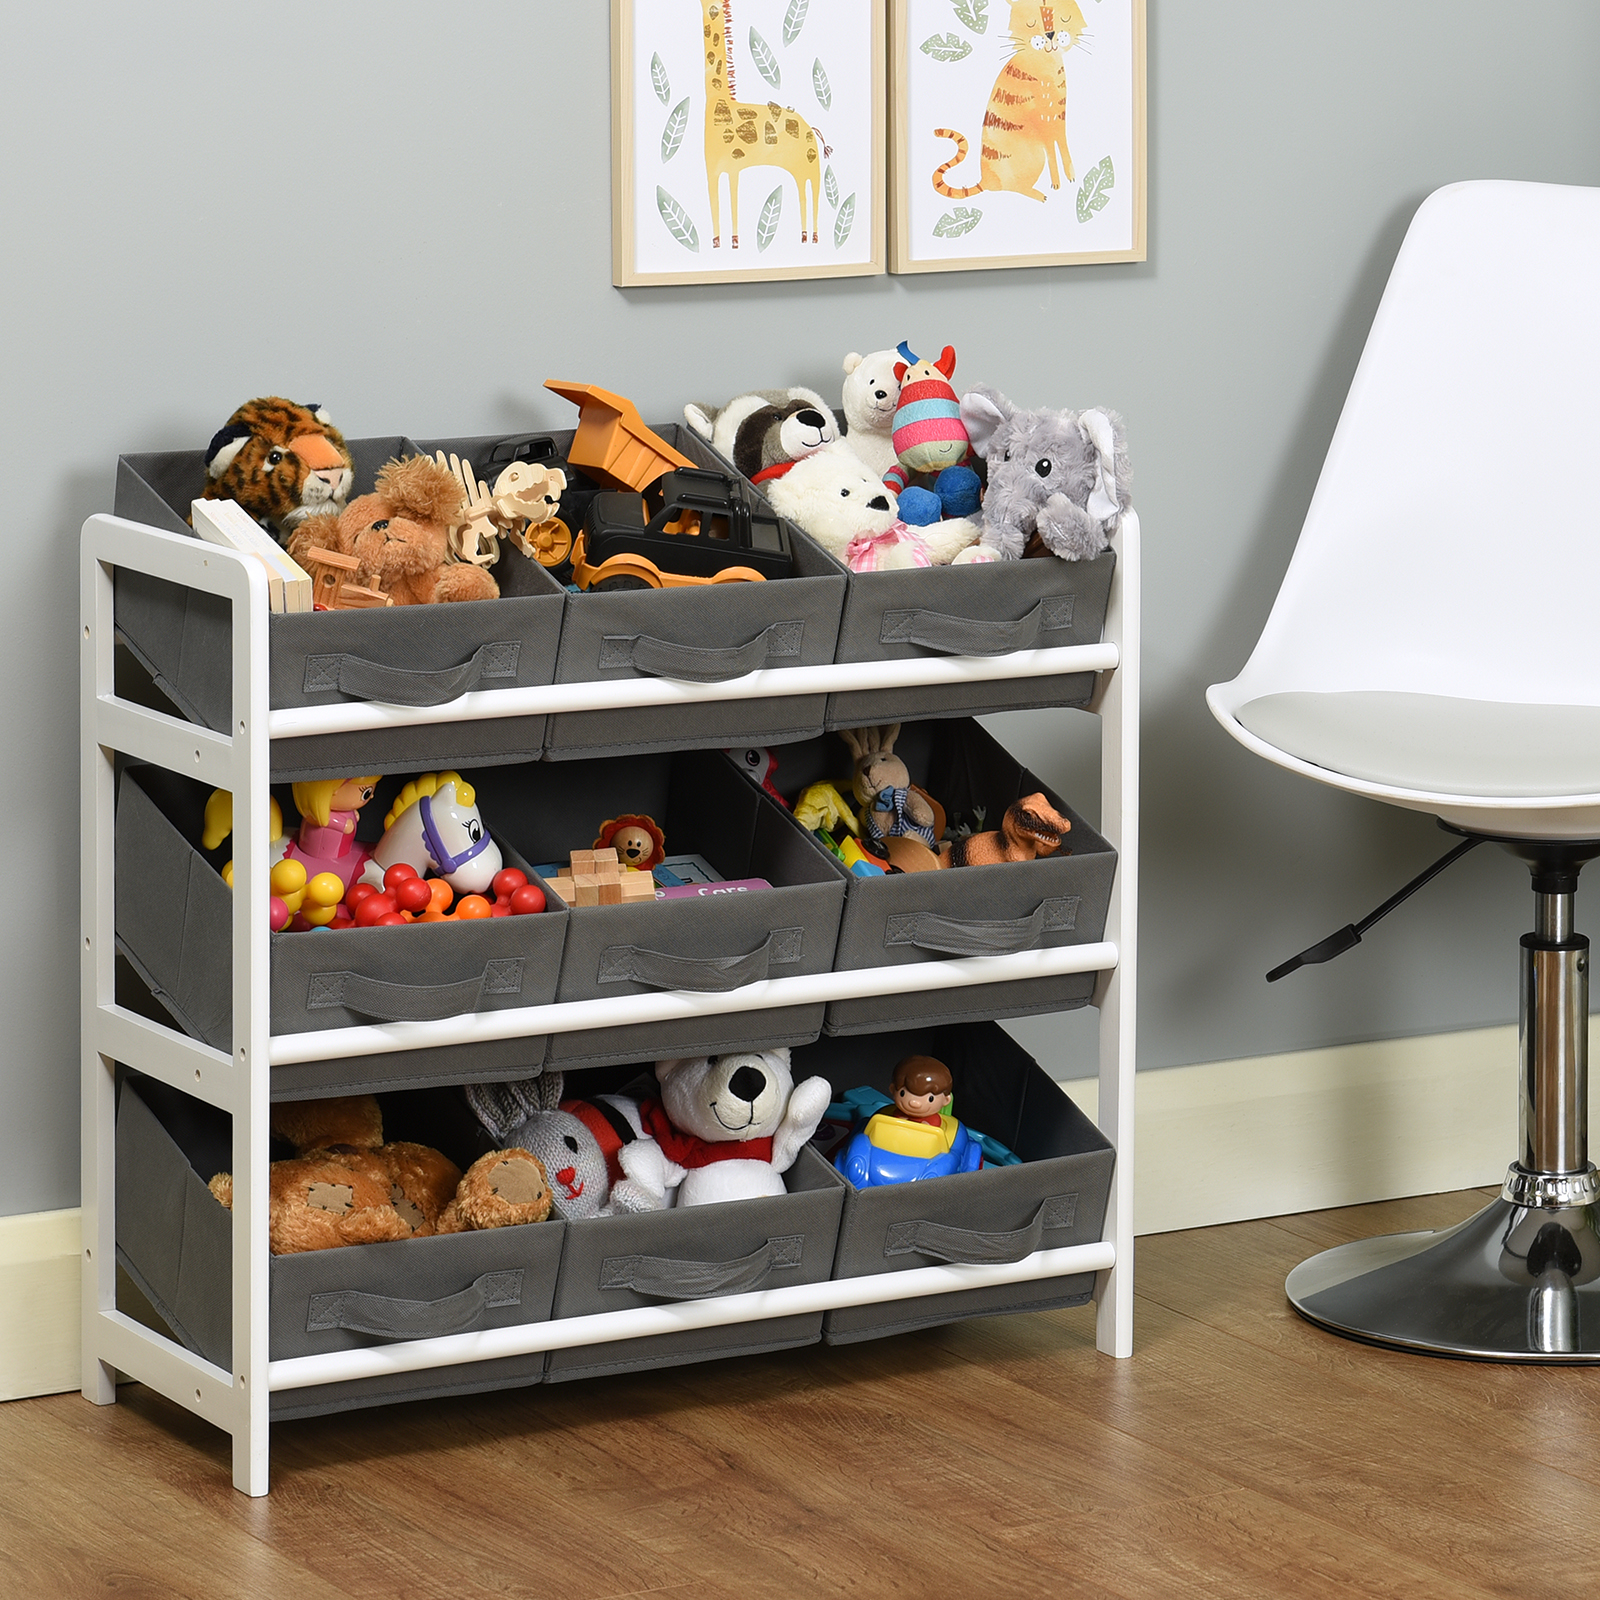 Details about Hartleys 3 Tier Storage Shelf Unit Kids Childrens Bedroom  Boxes/Drawers Toy Box